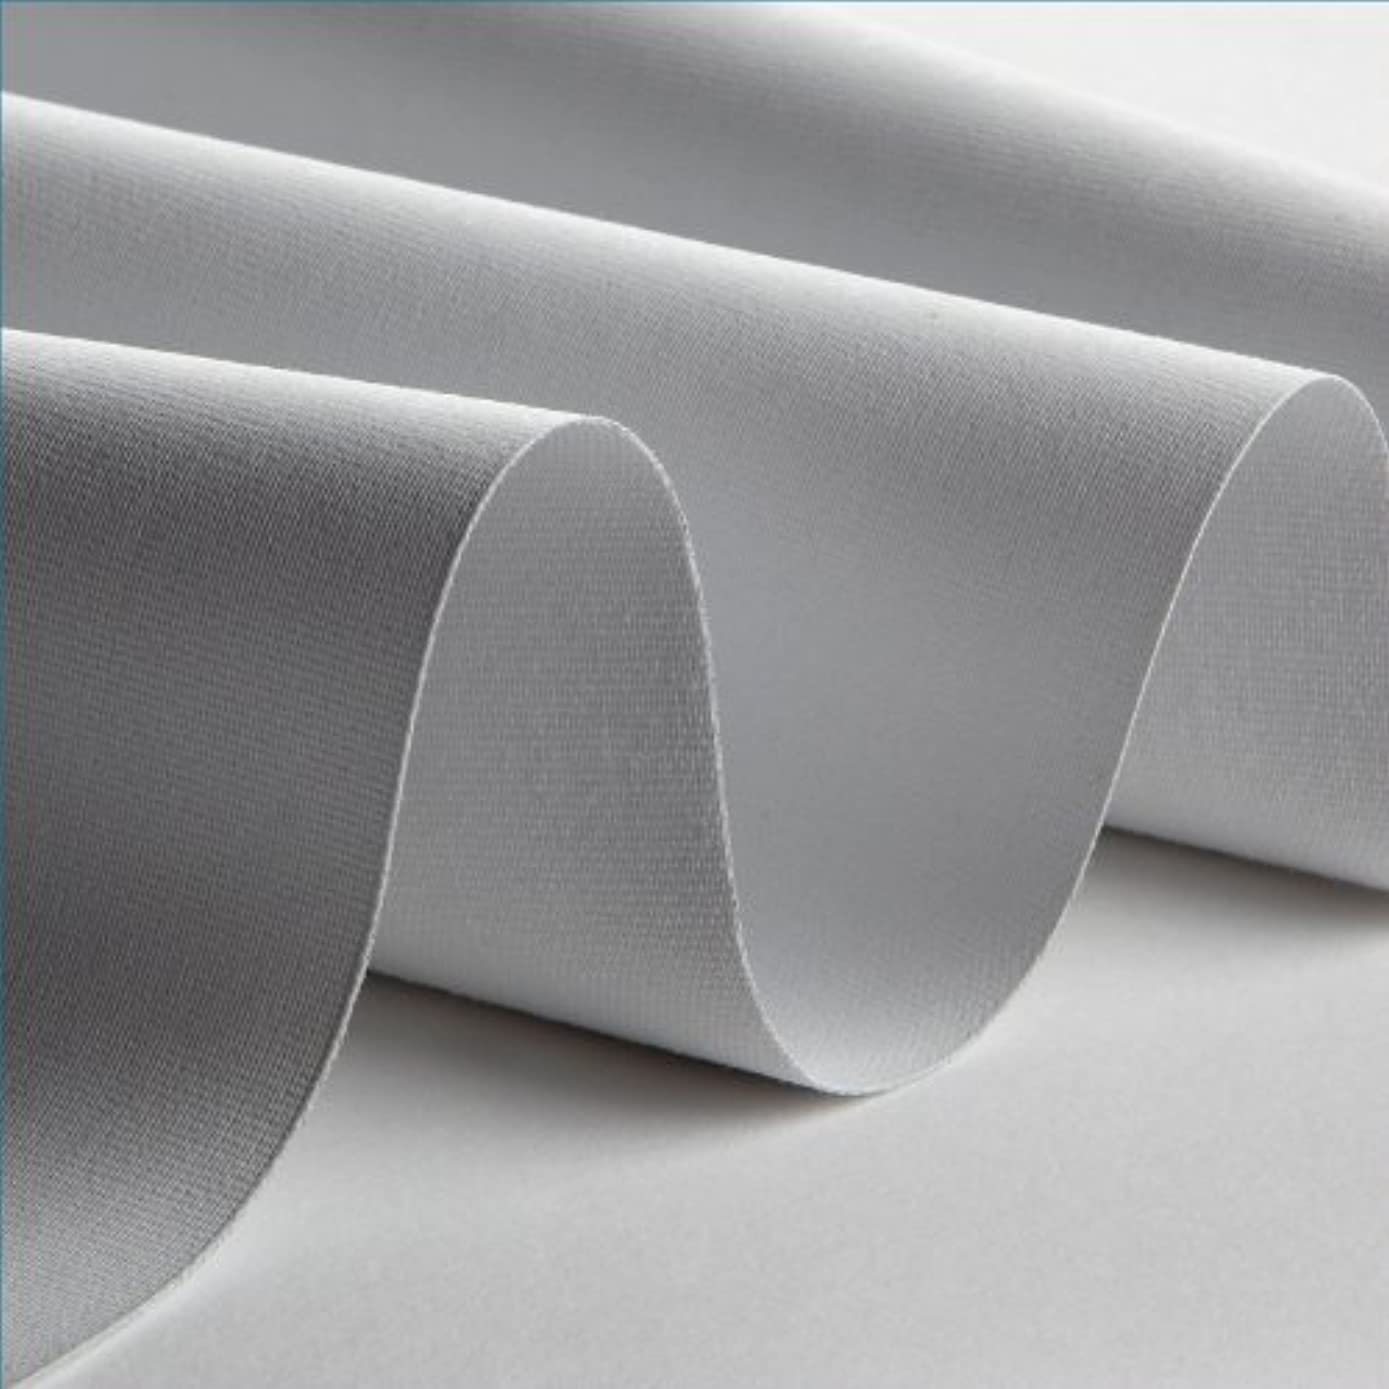 Carl's Blackout Cloth, 16:9, 110x200, Projector Screen Material, White, 1.0